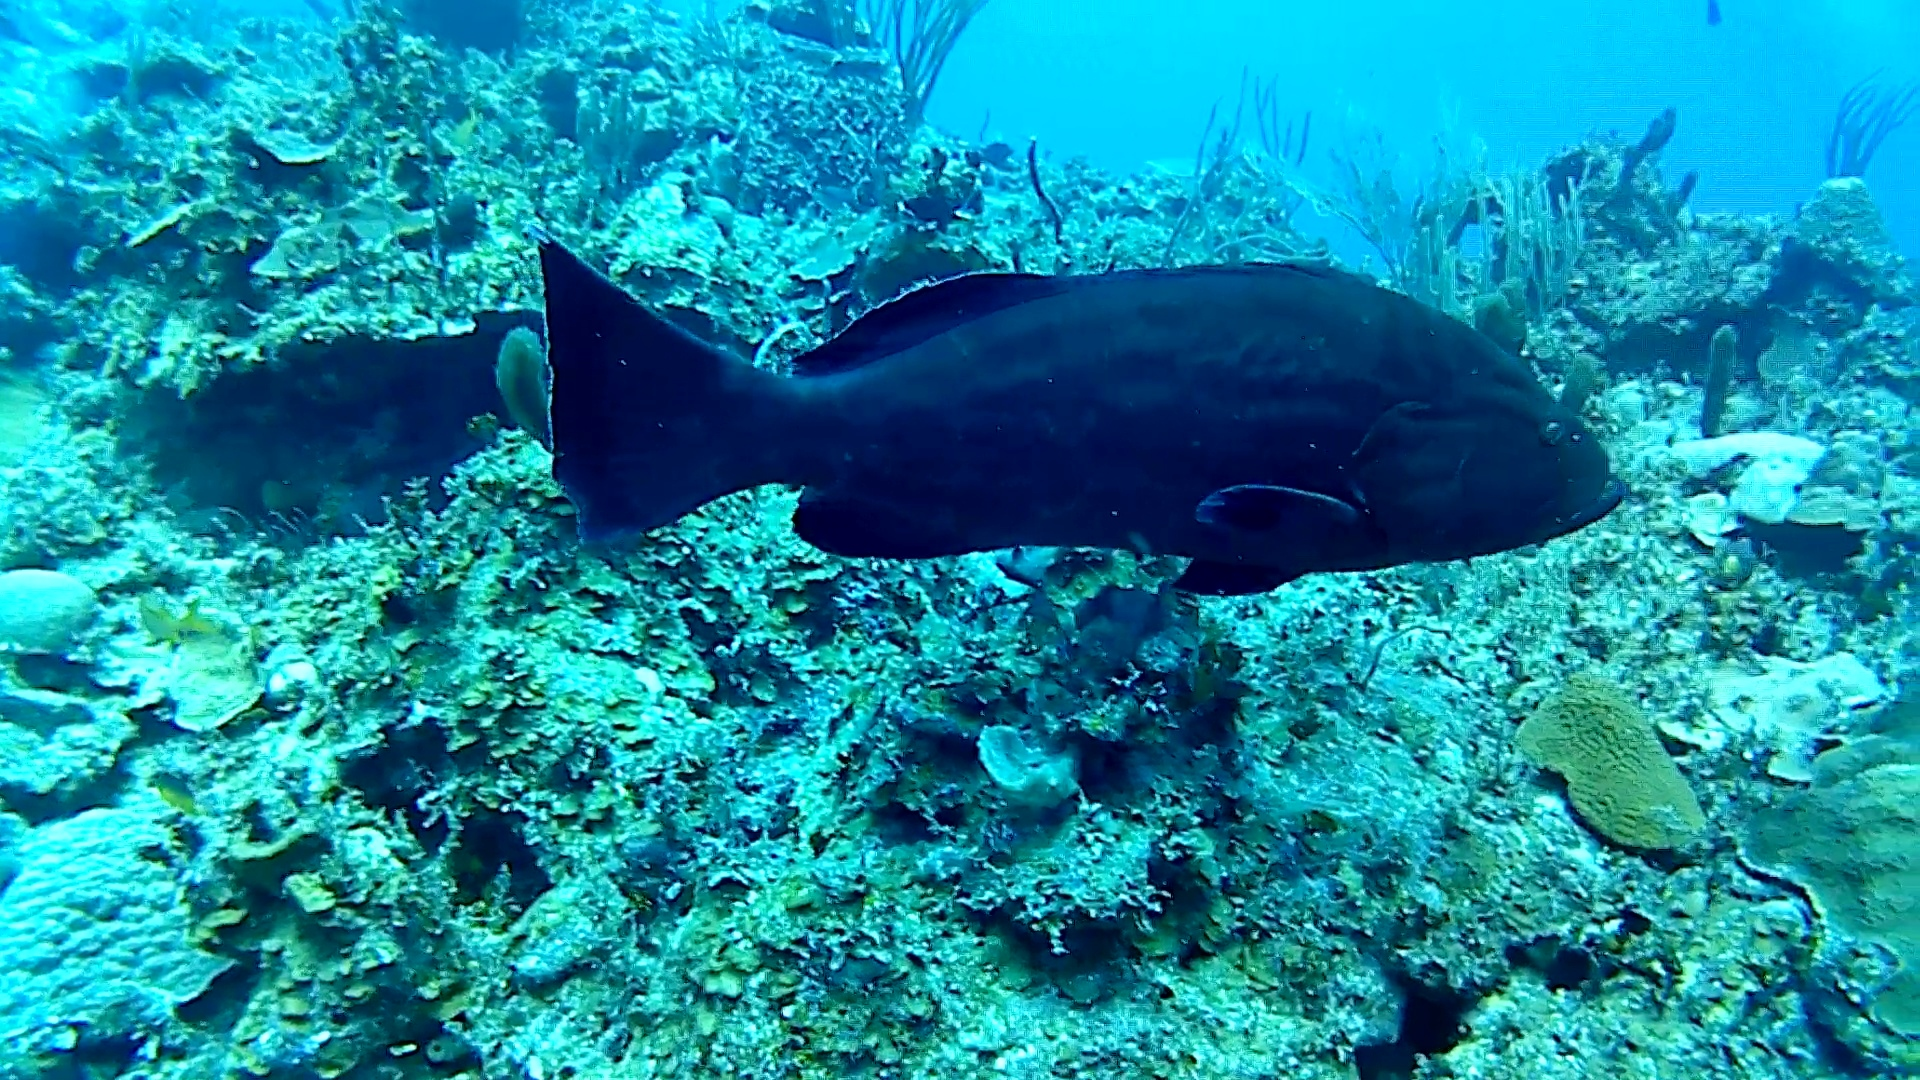 la cernia nera – the black grouper – intotheblue.it – vlcsnap-2019-02-25-16h35m21s283